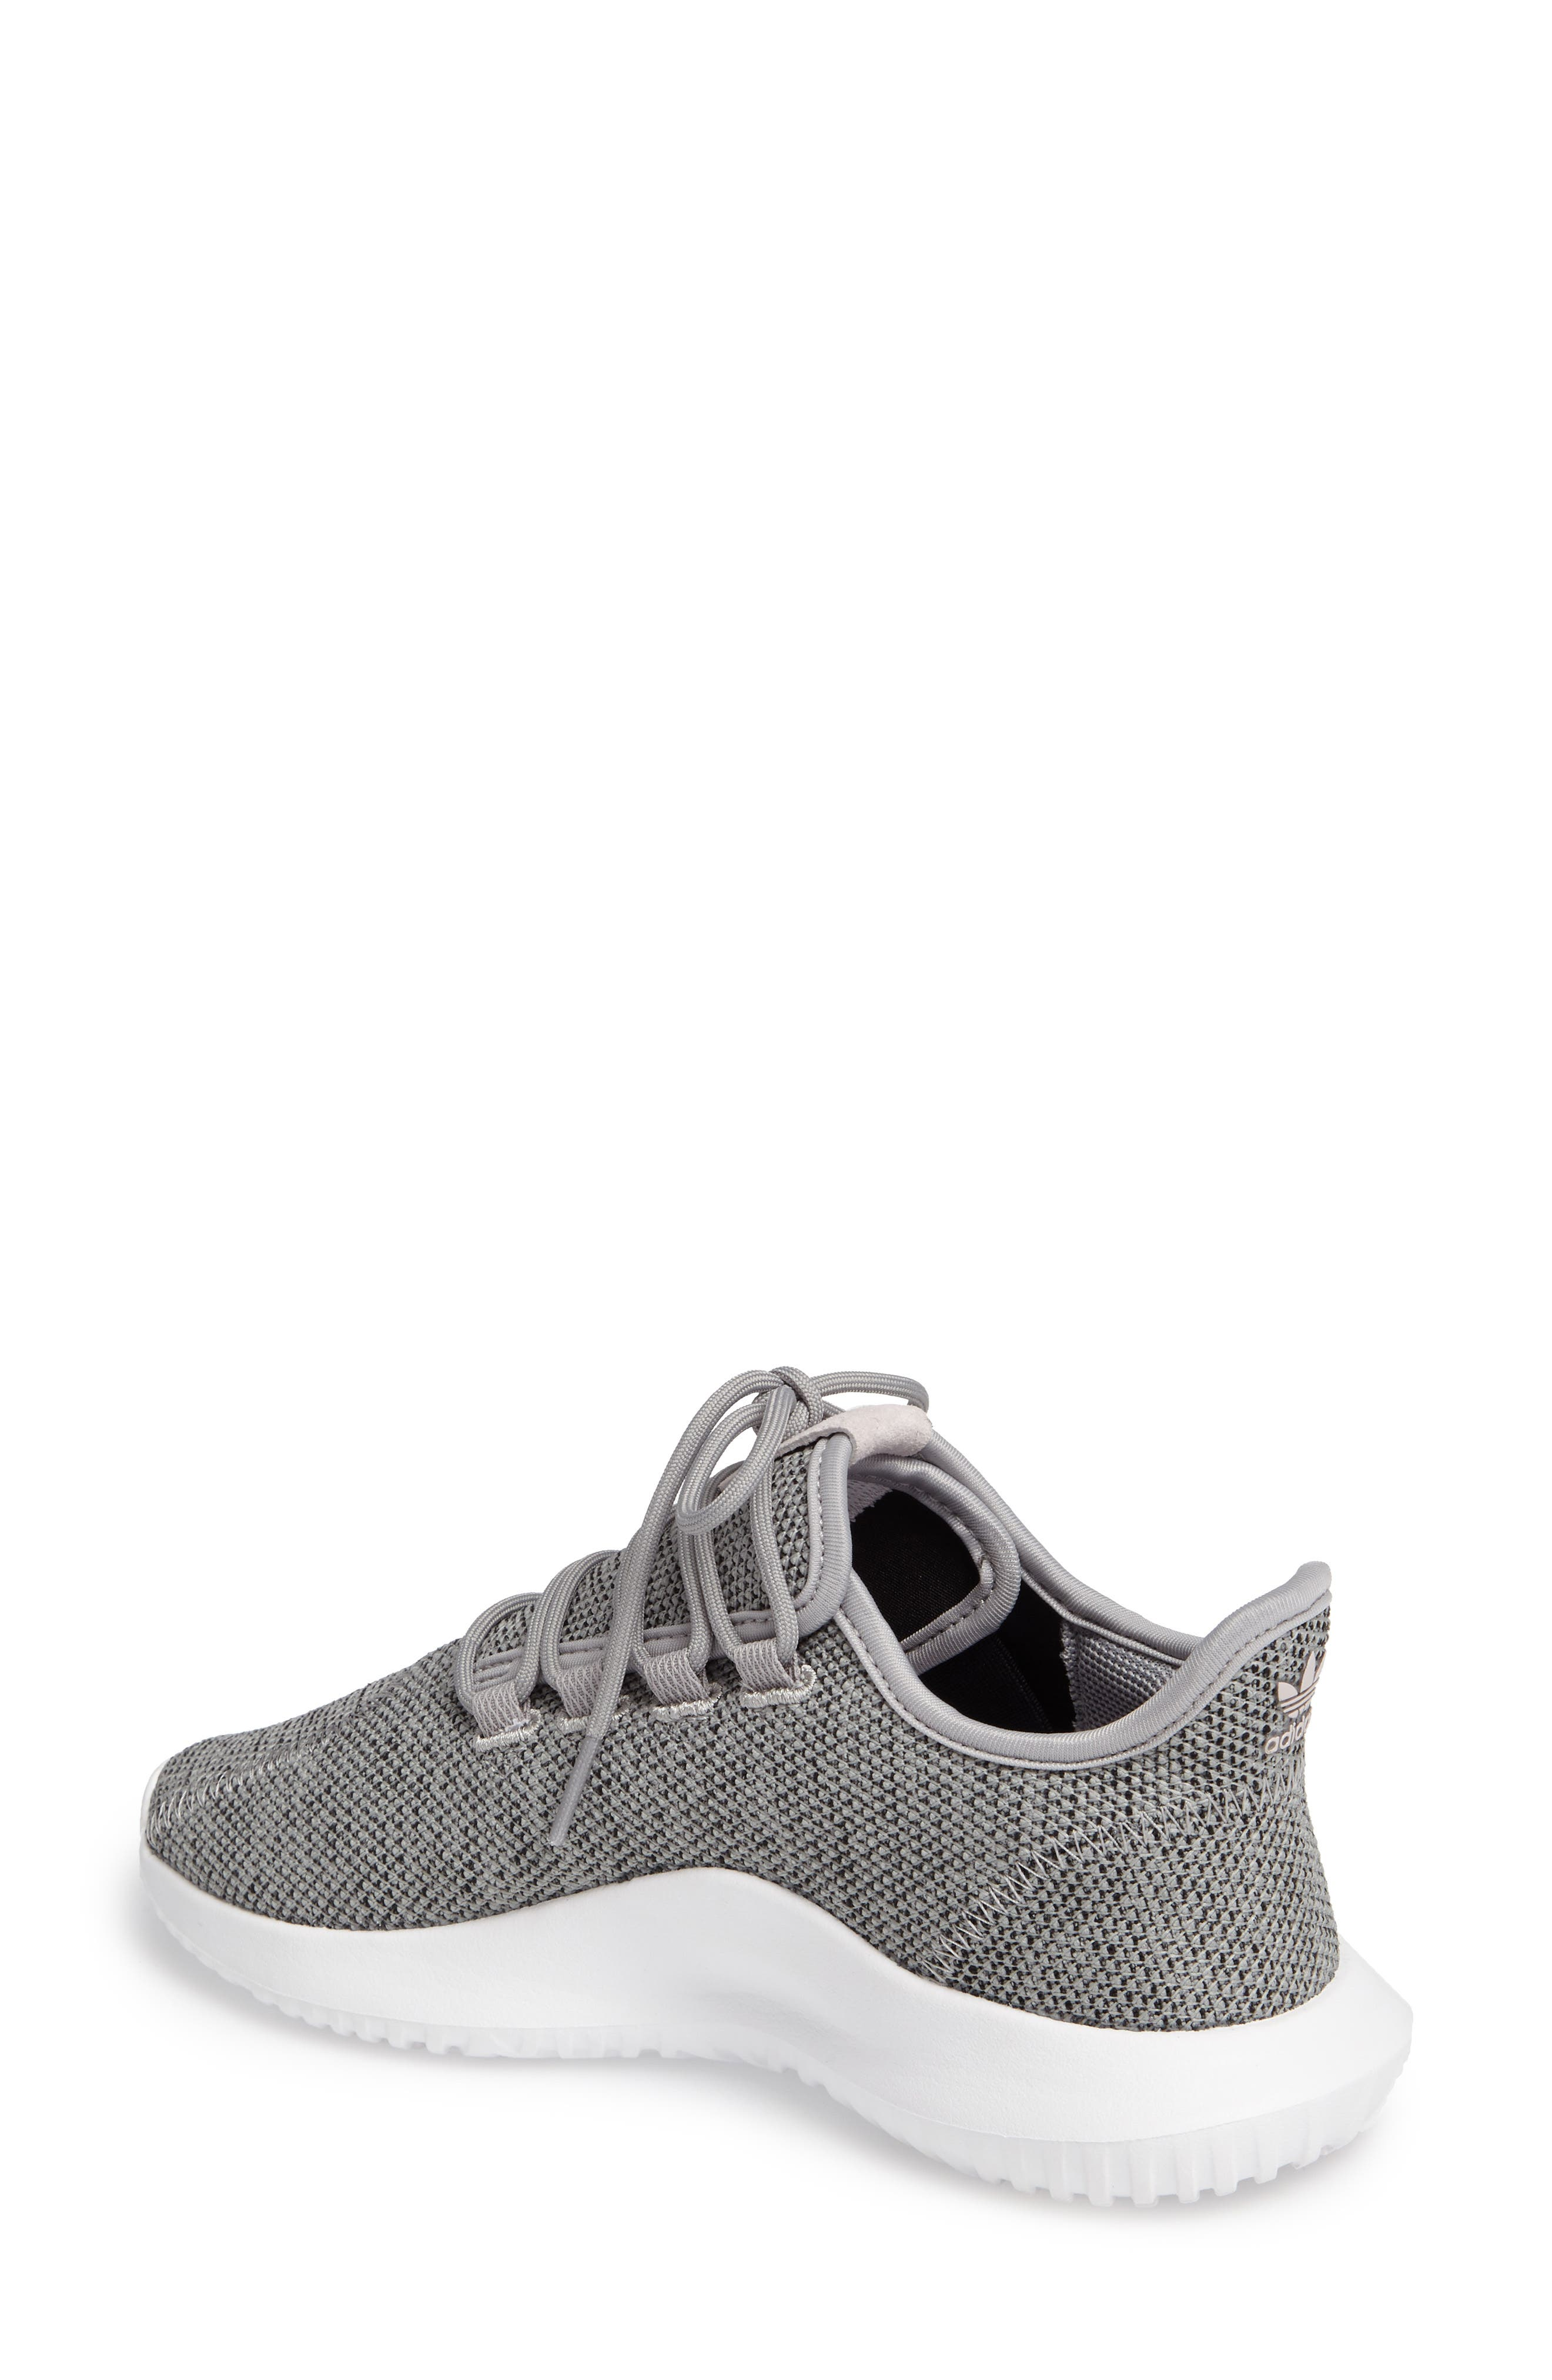 Tubular Shadow Sneaker,                             Alternate thumbnail 11, color,